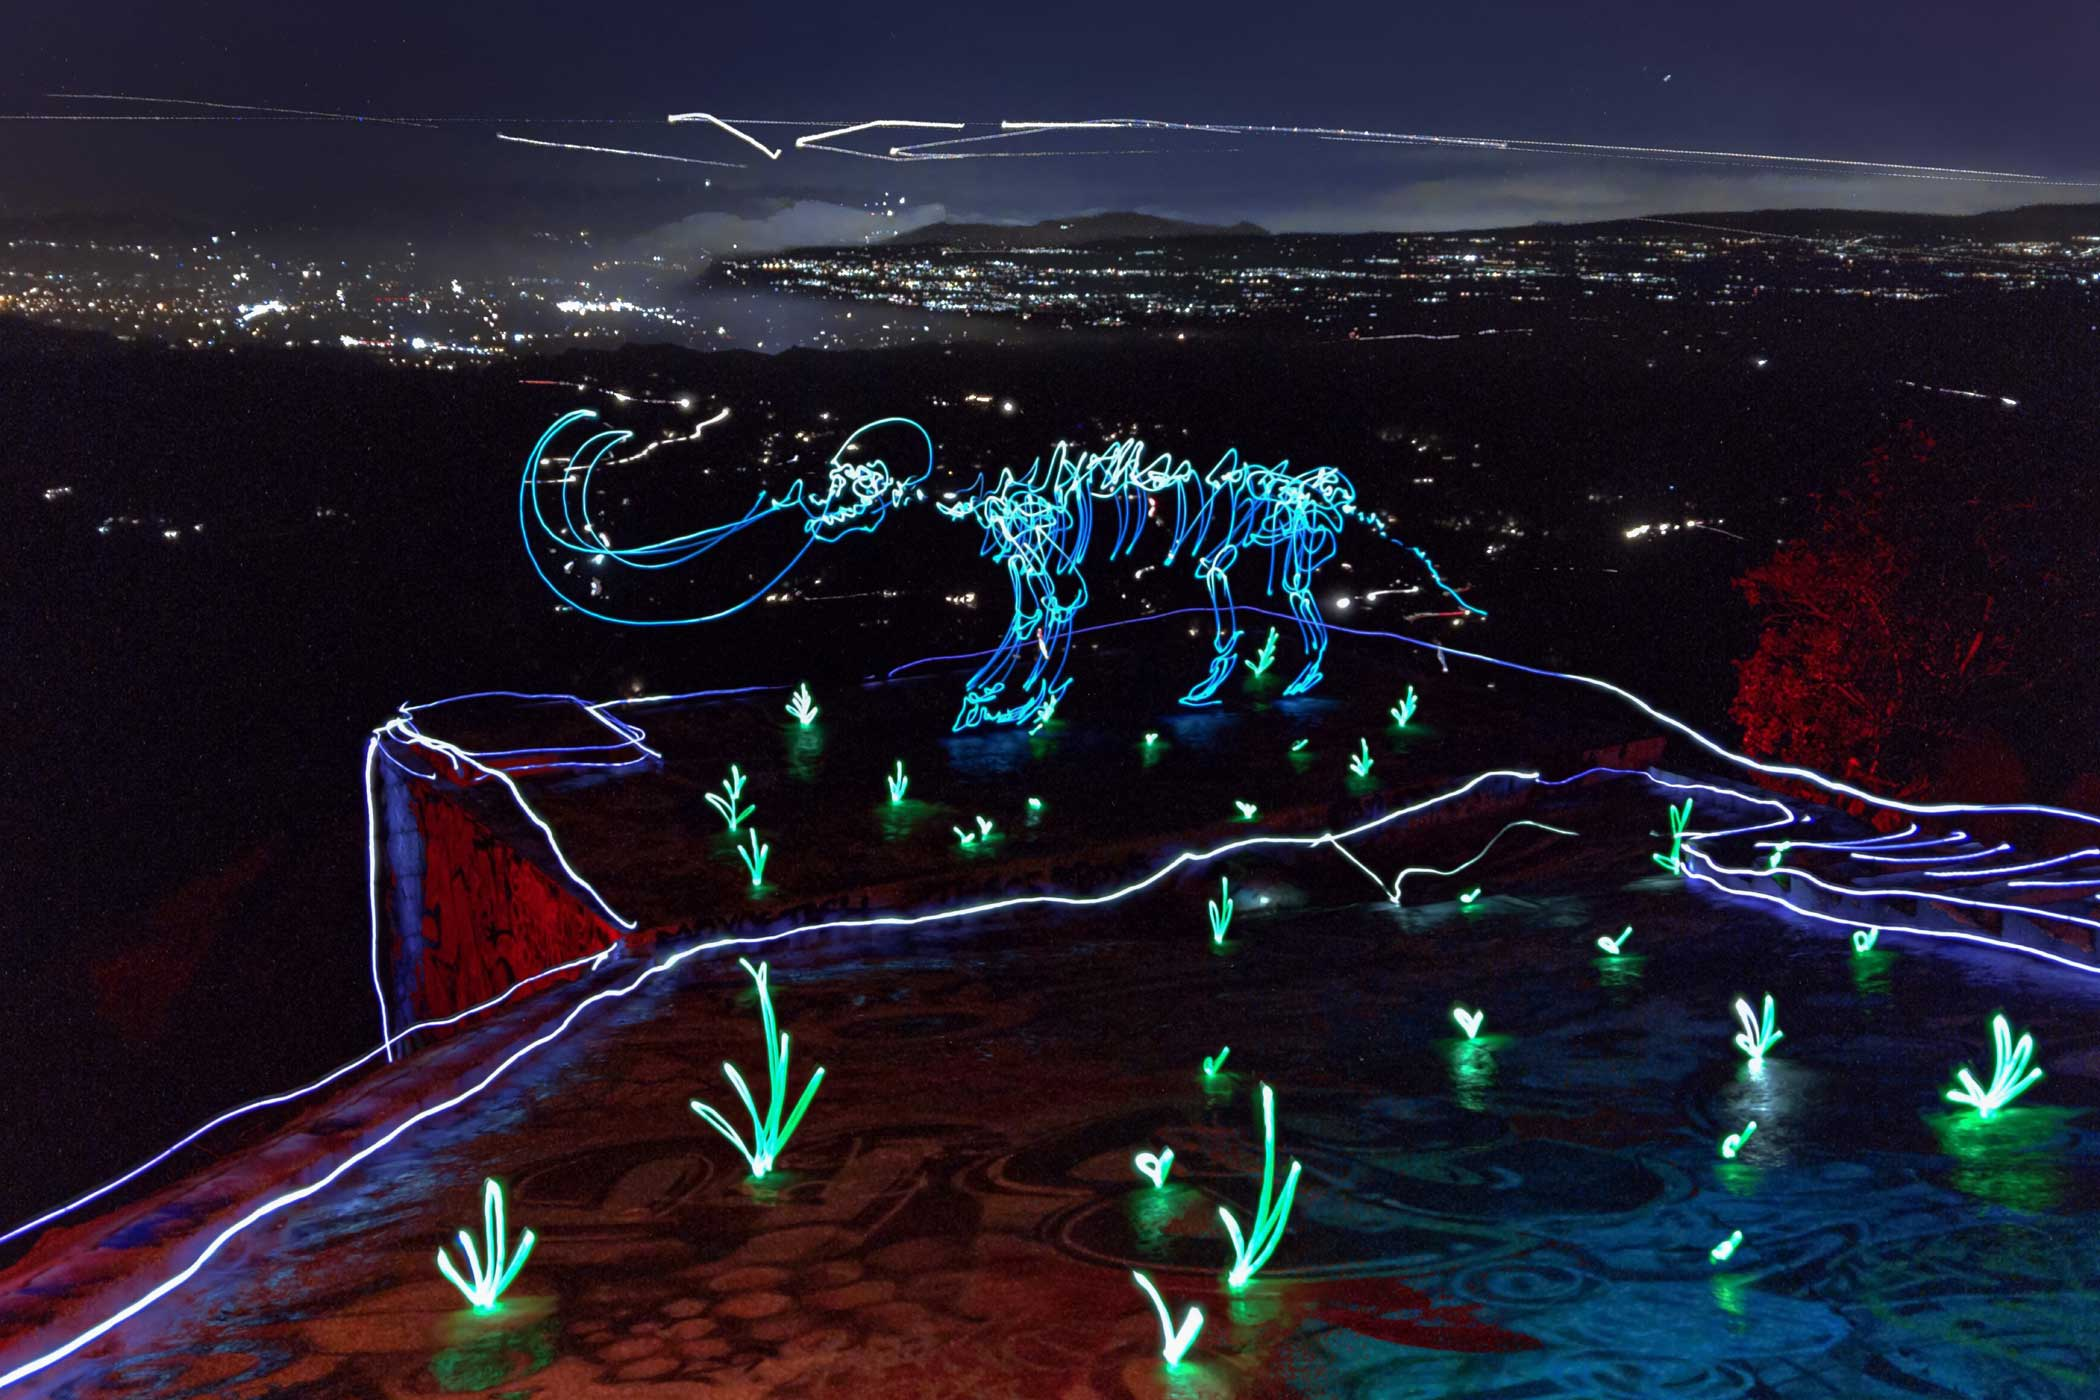 """Darren Pearson lights up the night with colorful characters and scenes in his LED paintings. For Tree of Light, he """"sketches"""" midair with a handheld light, taking long-exposure photos with the NightCap Pro app on iPhone 6s Plus. His Apple Watch acts as a viewfinder throughout the process, giving him a live preview of his drawing as it takes shape."""